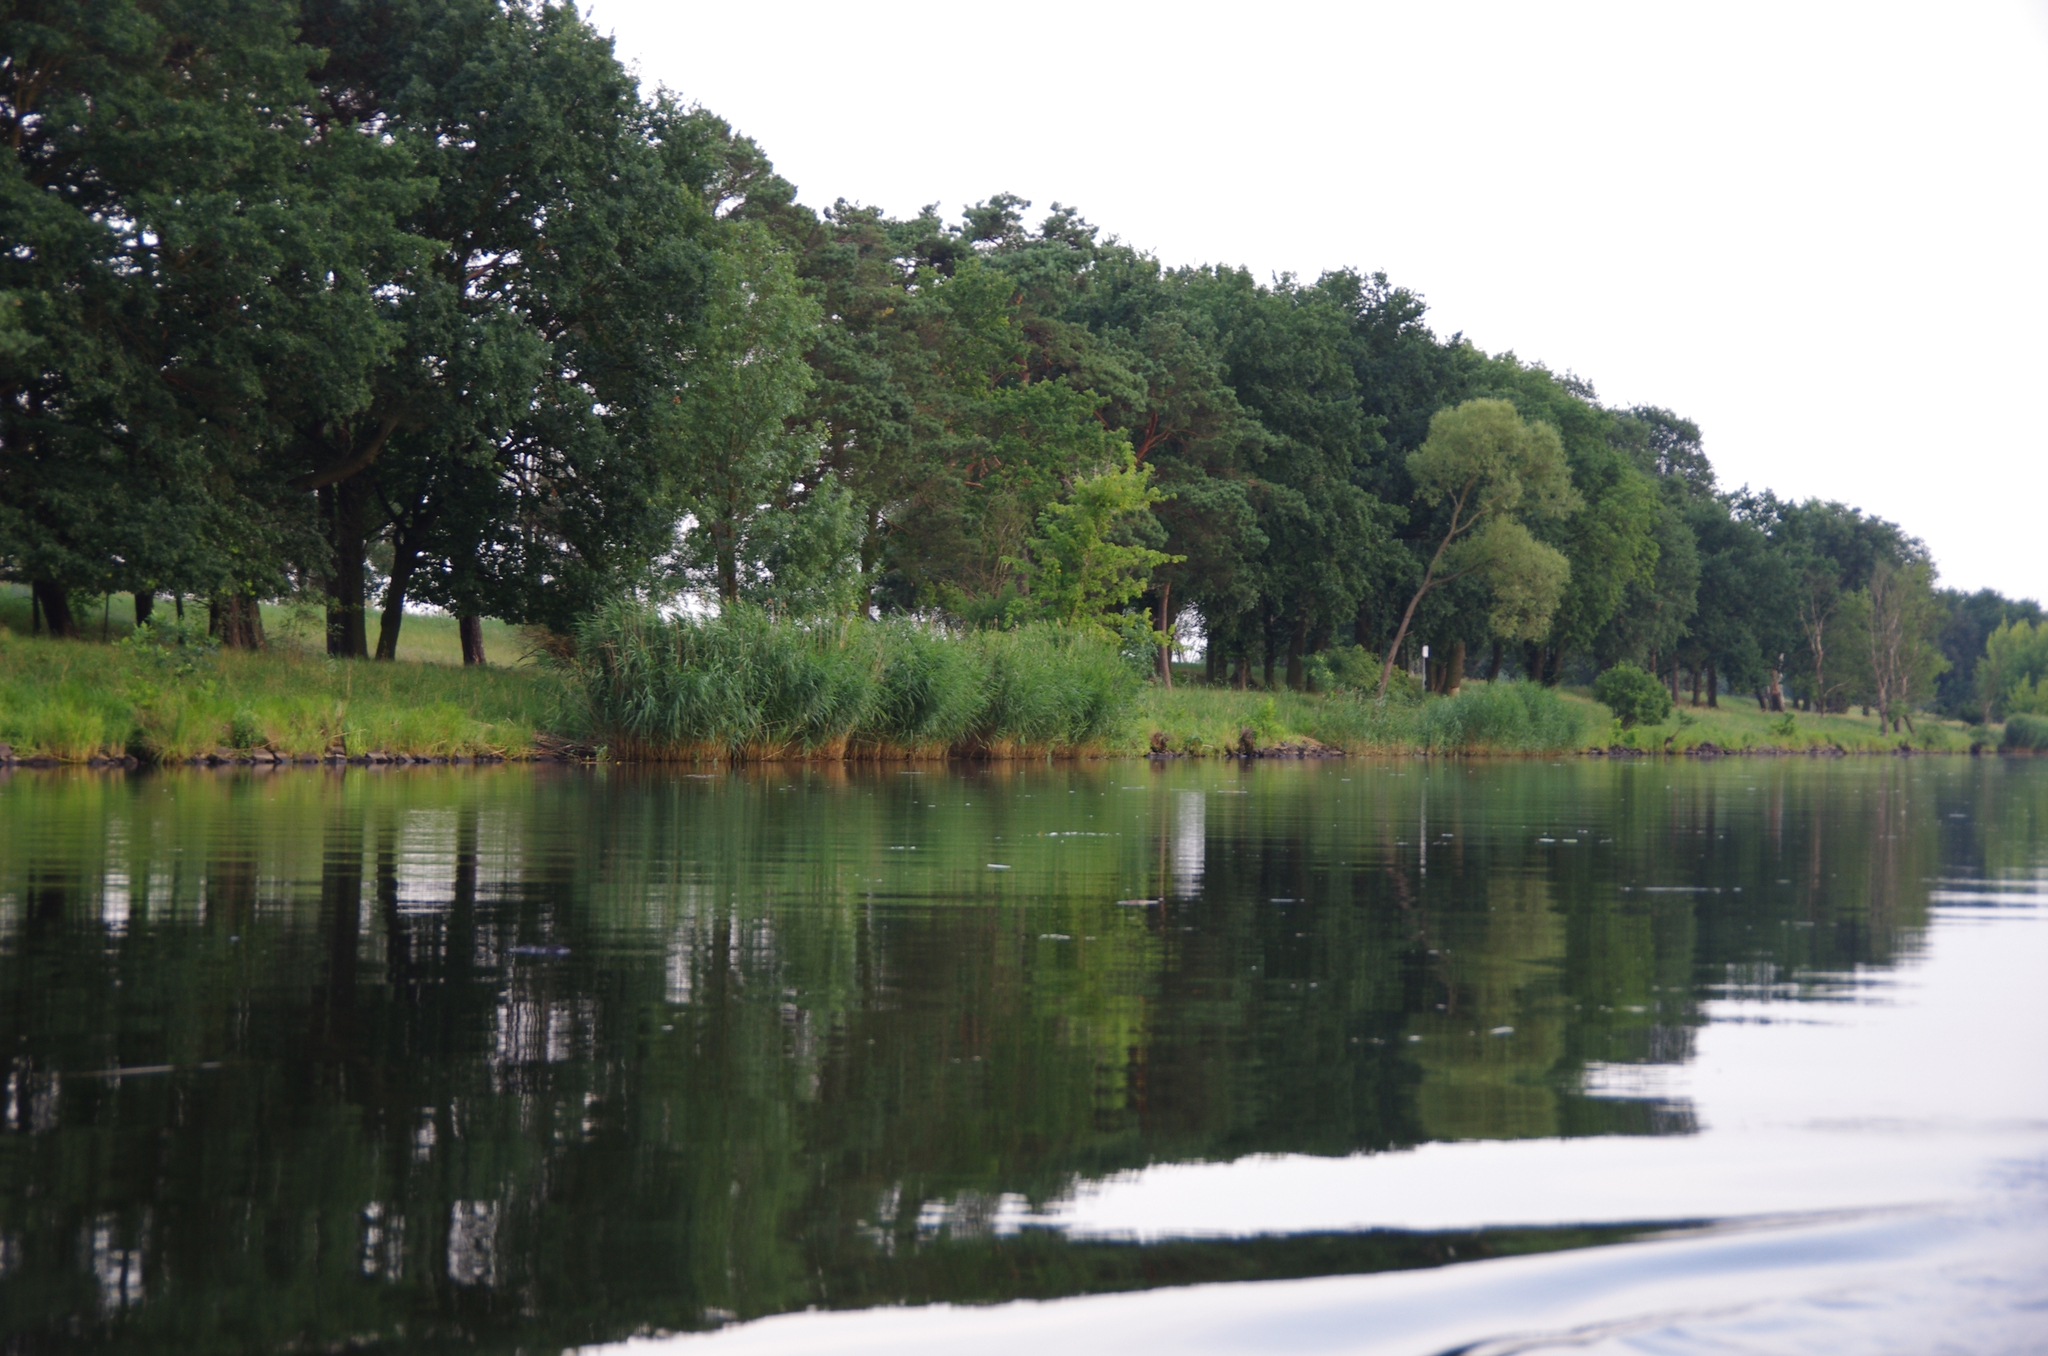 kayaking-odra-east-and-west_18-58-09_25-07-2016